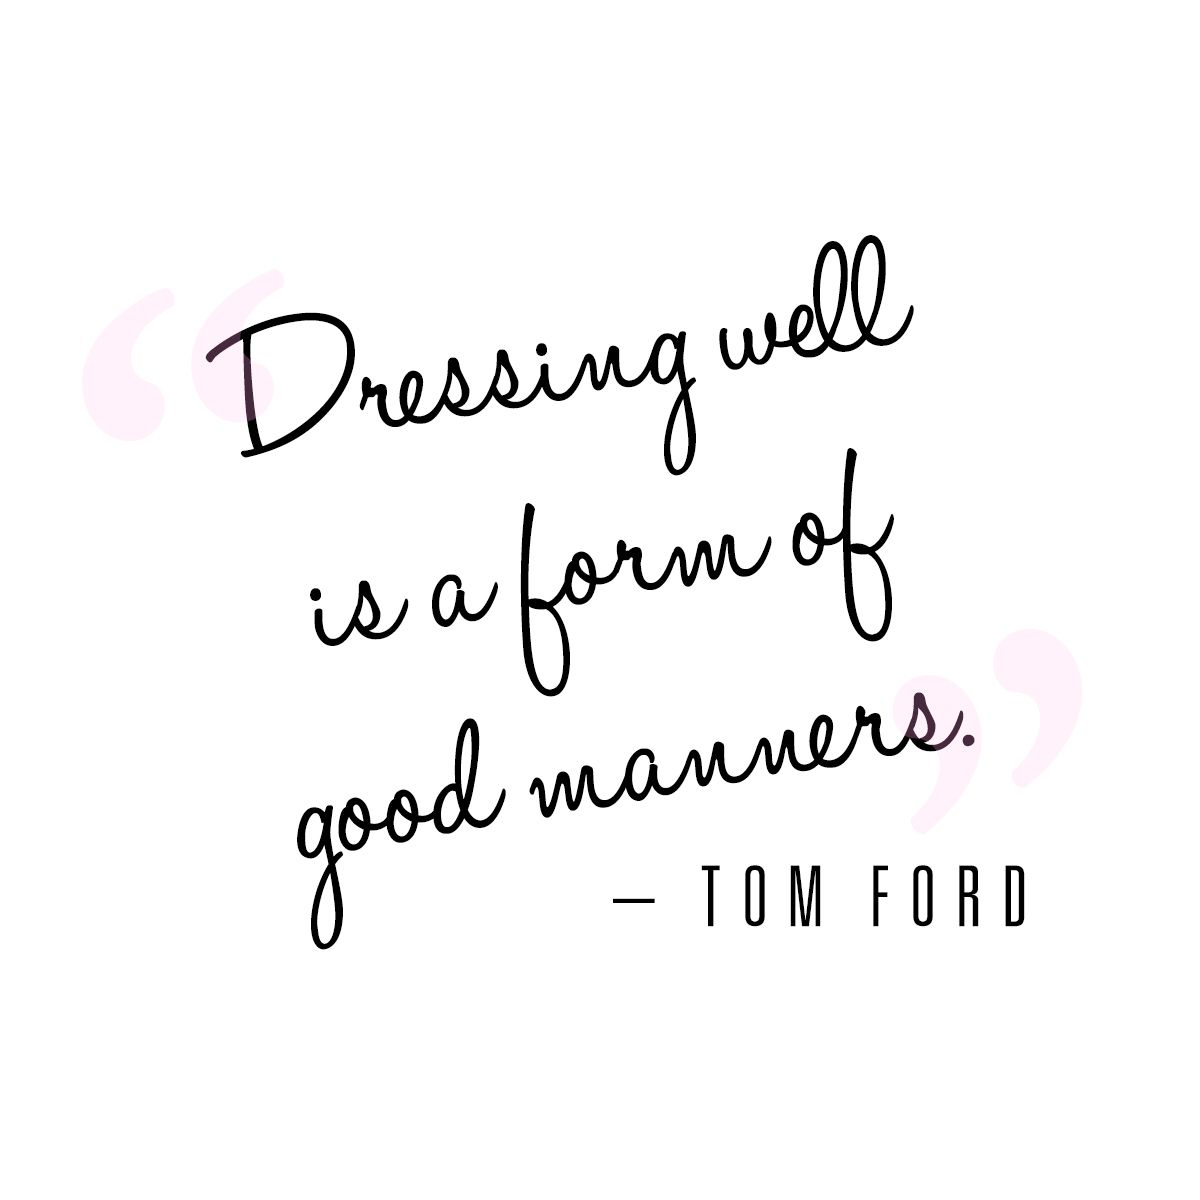 """Our May newsletter motto: """"Dressing well is a form of good manners"""" – Tom Ford #WellSaid Shop the latest at cusp.com"""